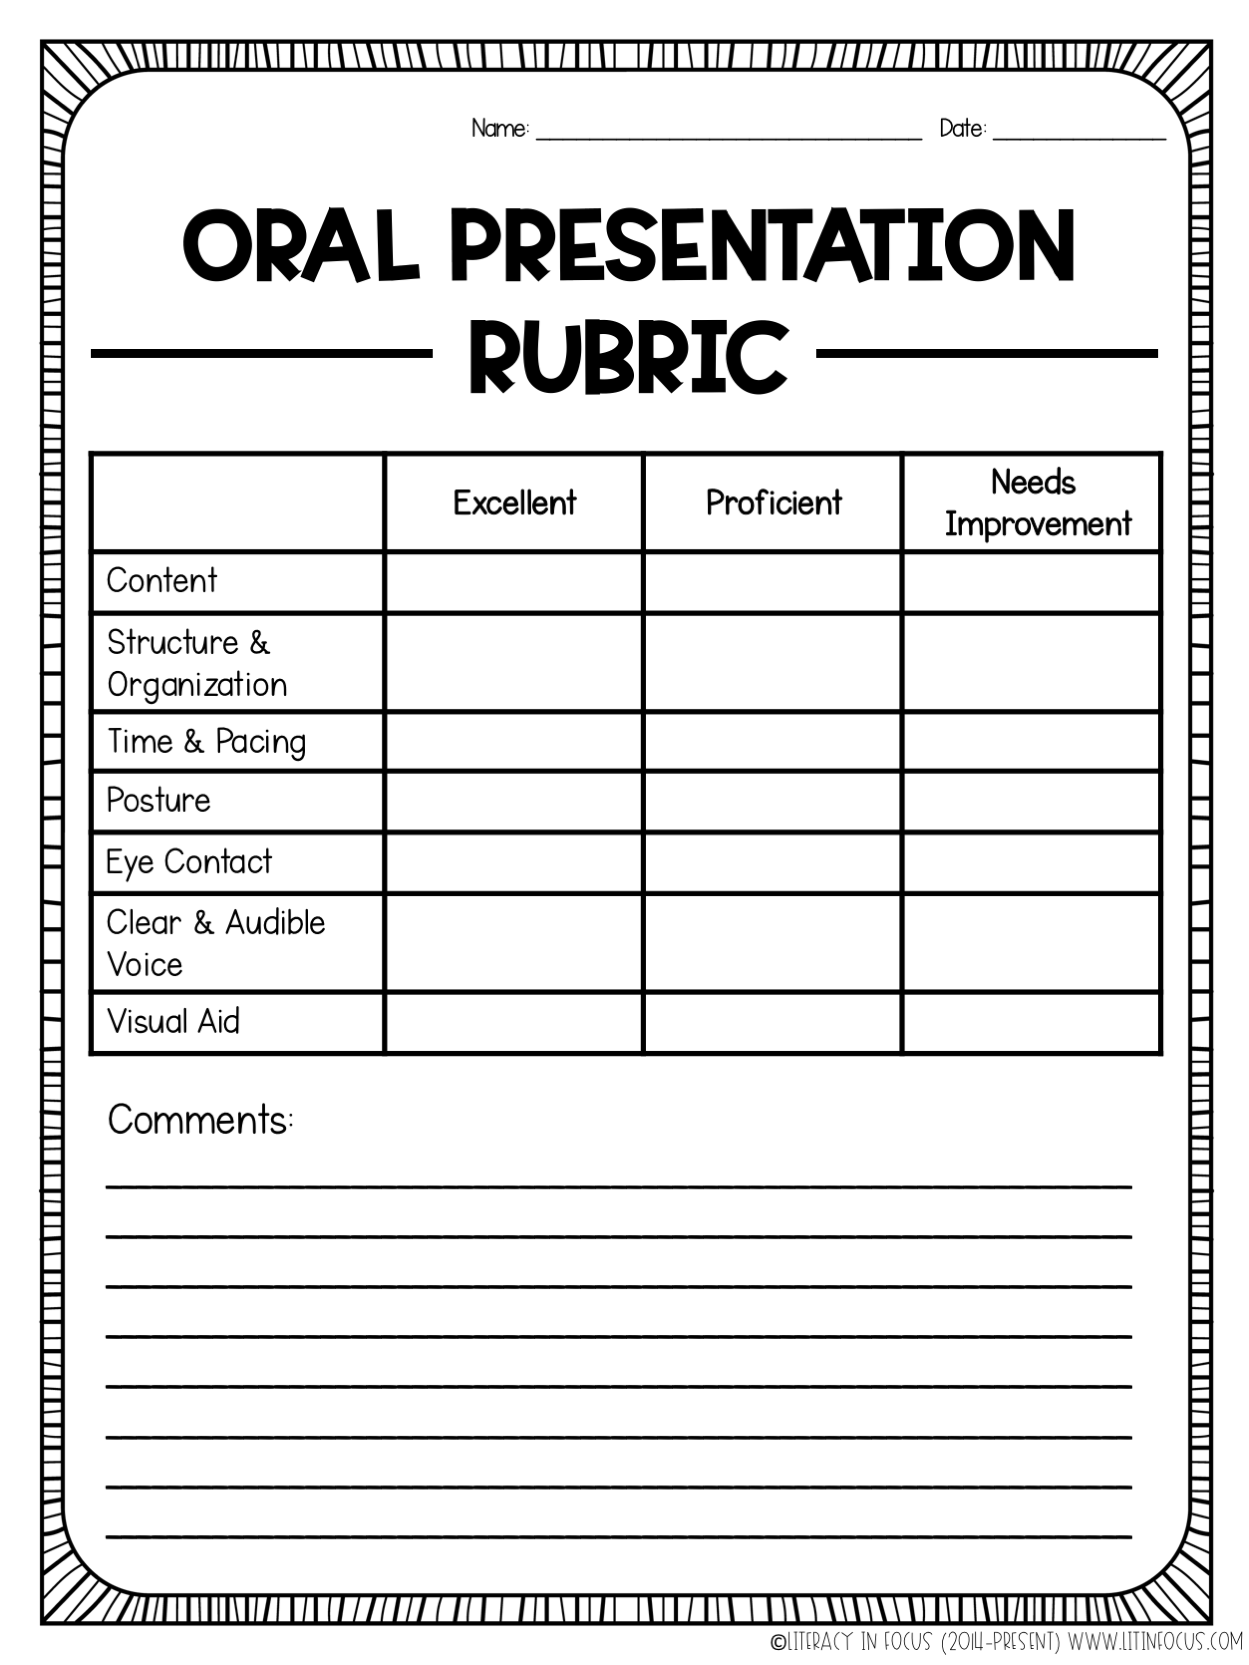 Preparing Students For Successful Presentations